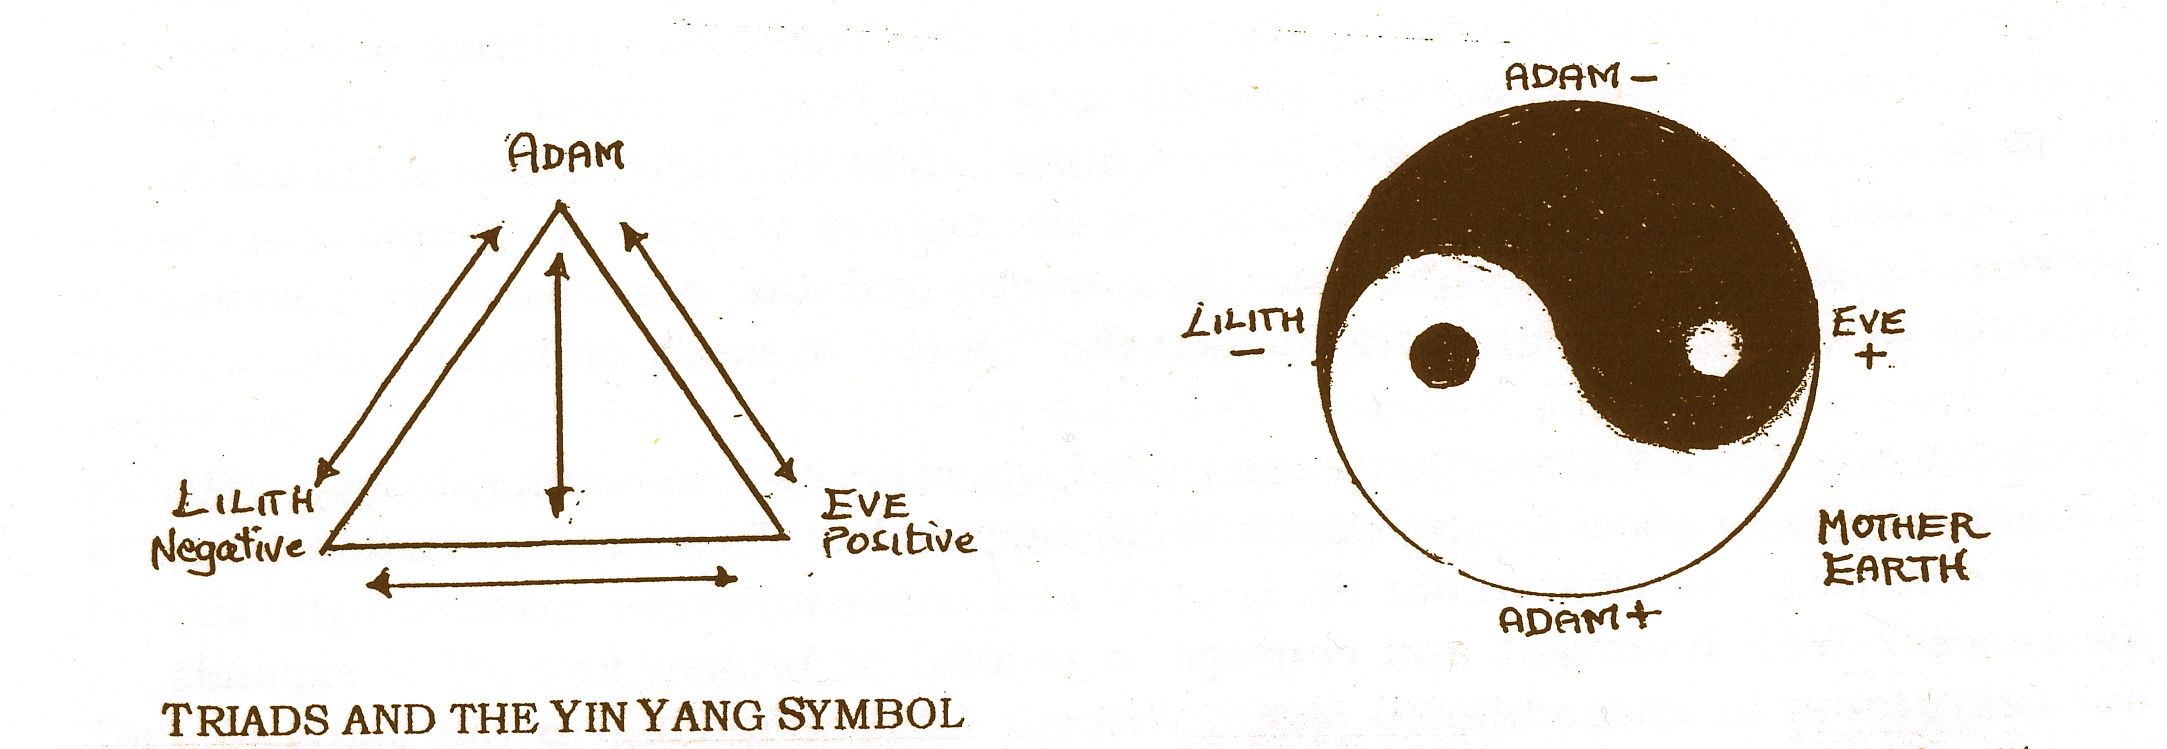 14 diagram triad and tao janeadamsart published december 16 2013 at 2167 749 in observations on the lilith archetype buycottarizona Images